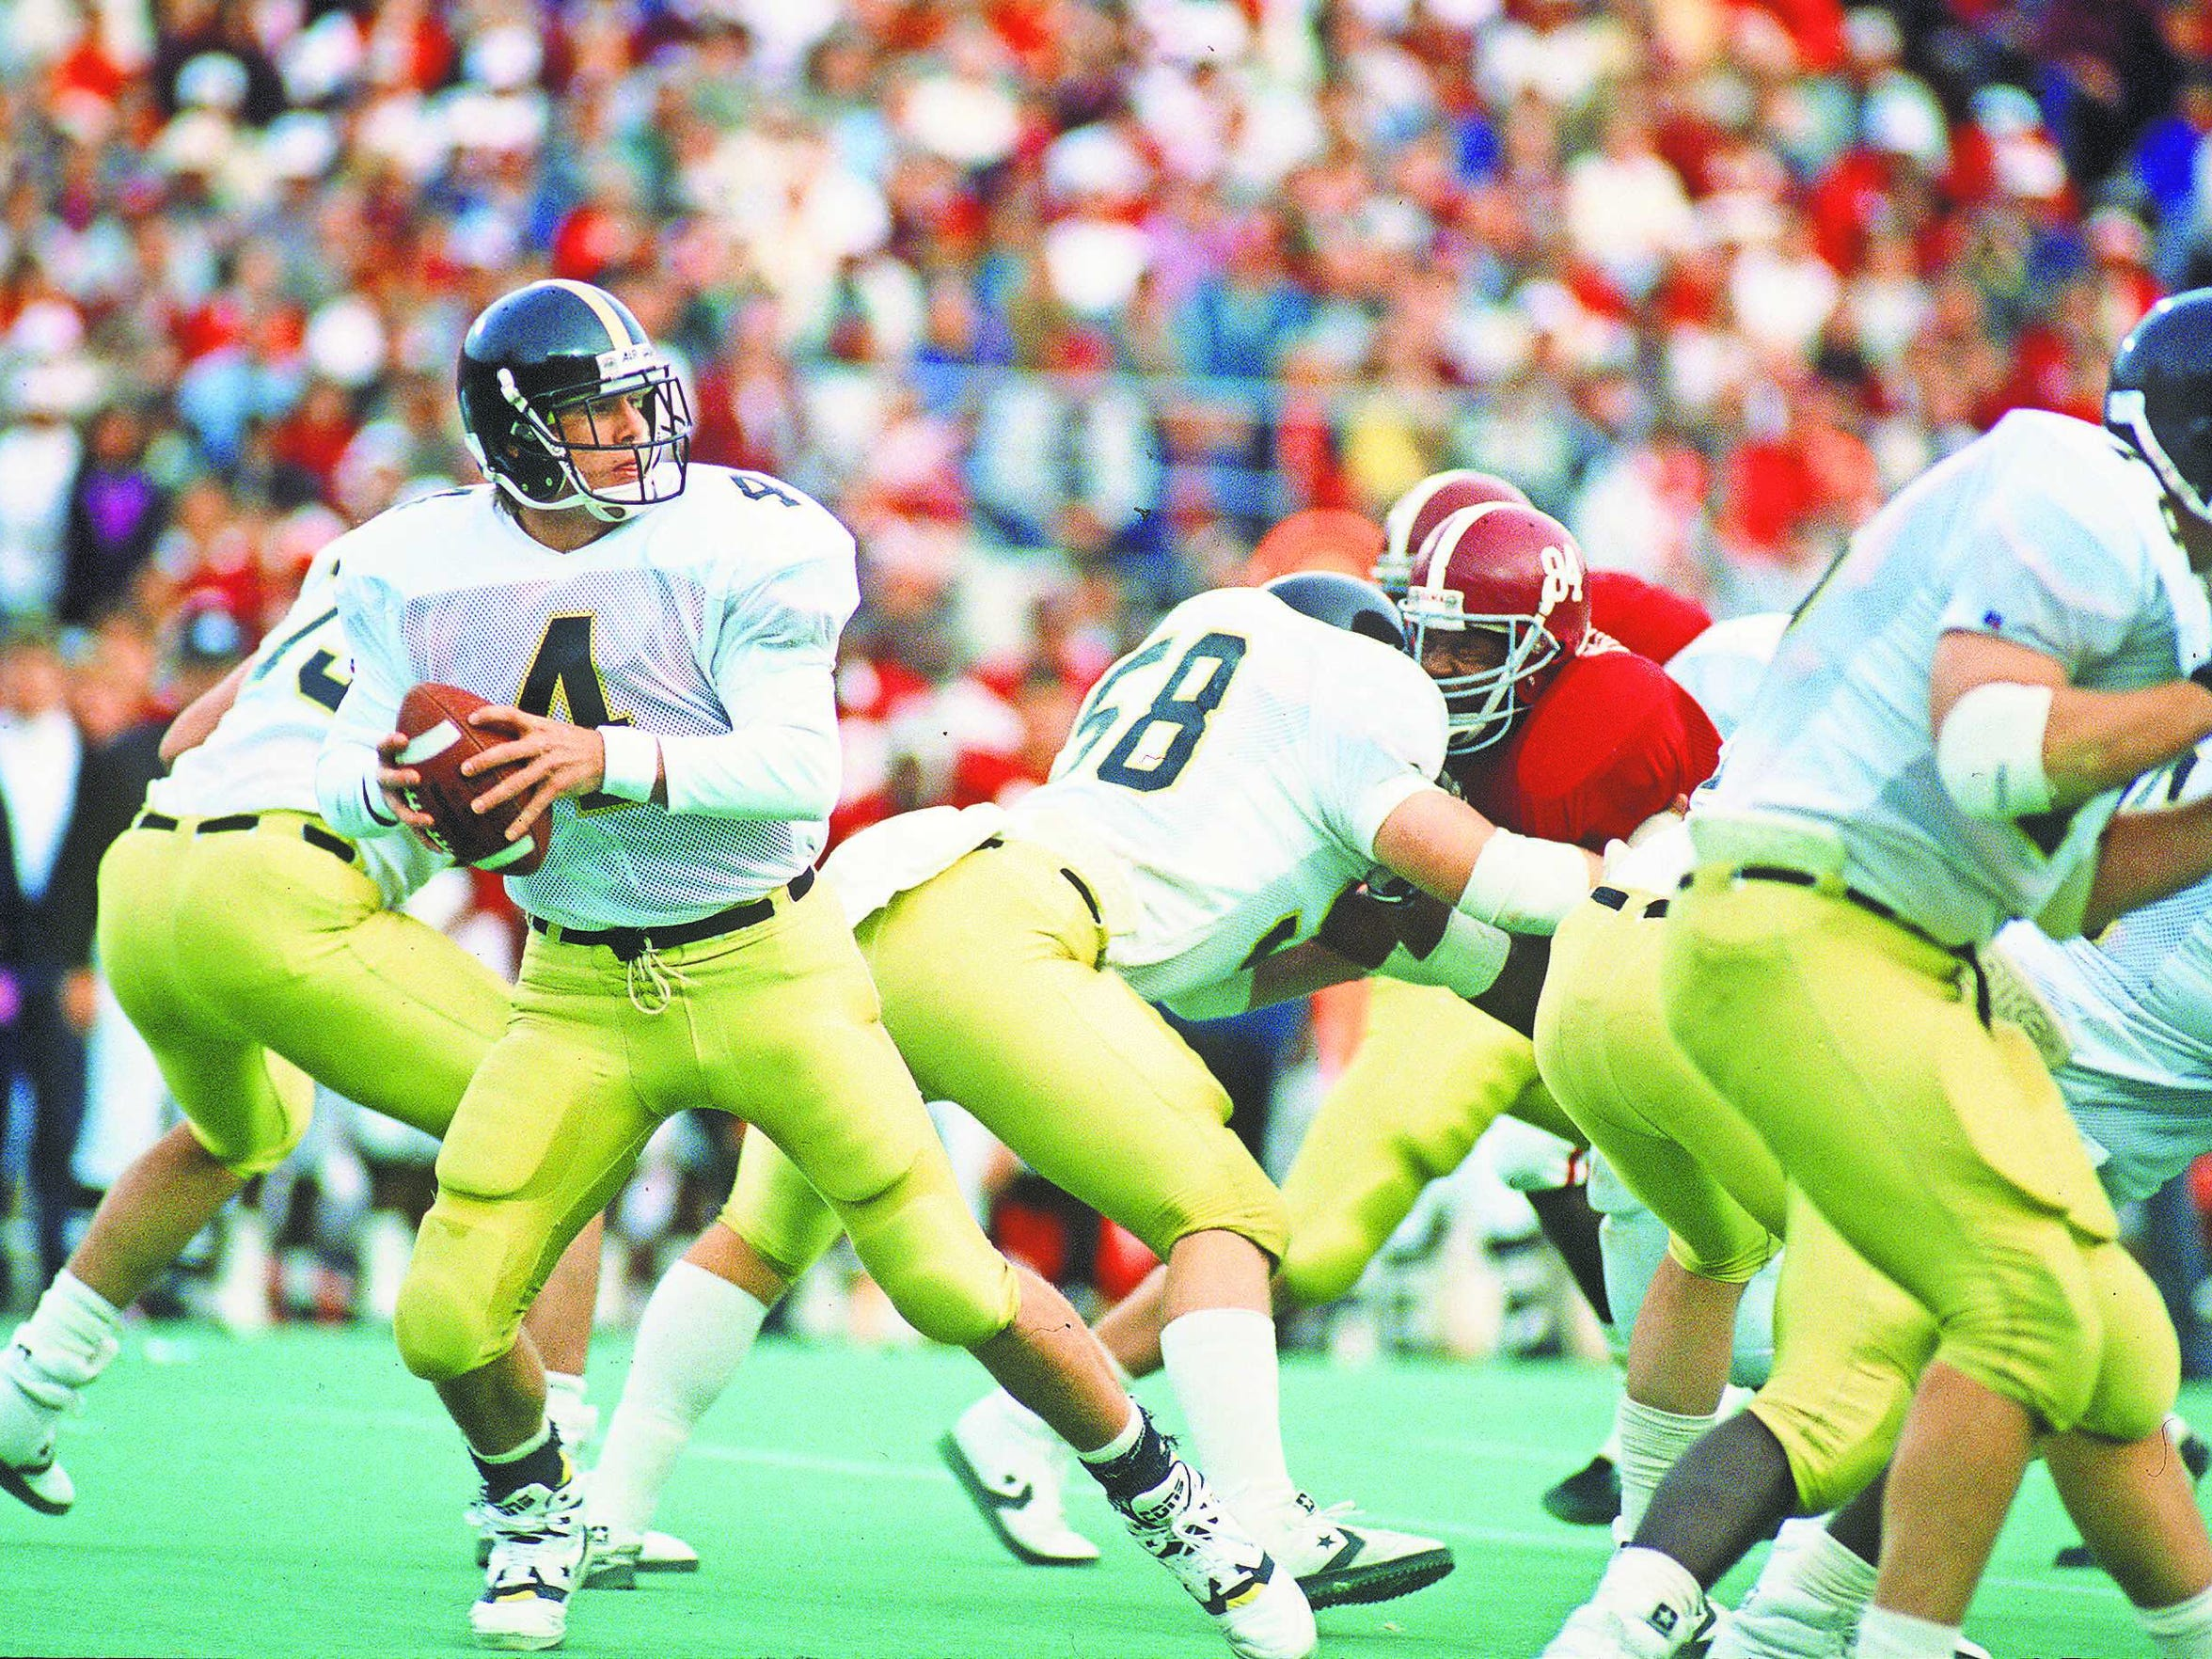 During his time at Southern Miss Brett Favre beat Alabama, Auburn, Mississippi State and Florida State, among others.